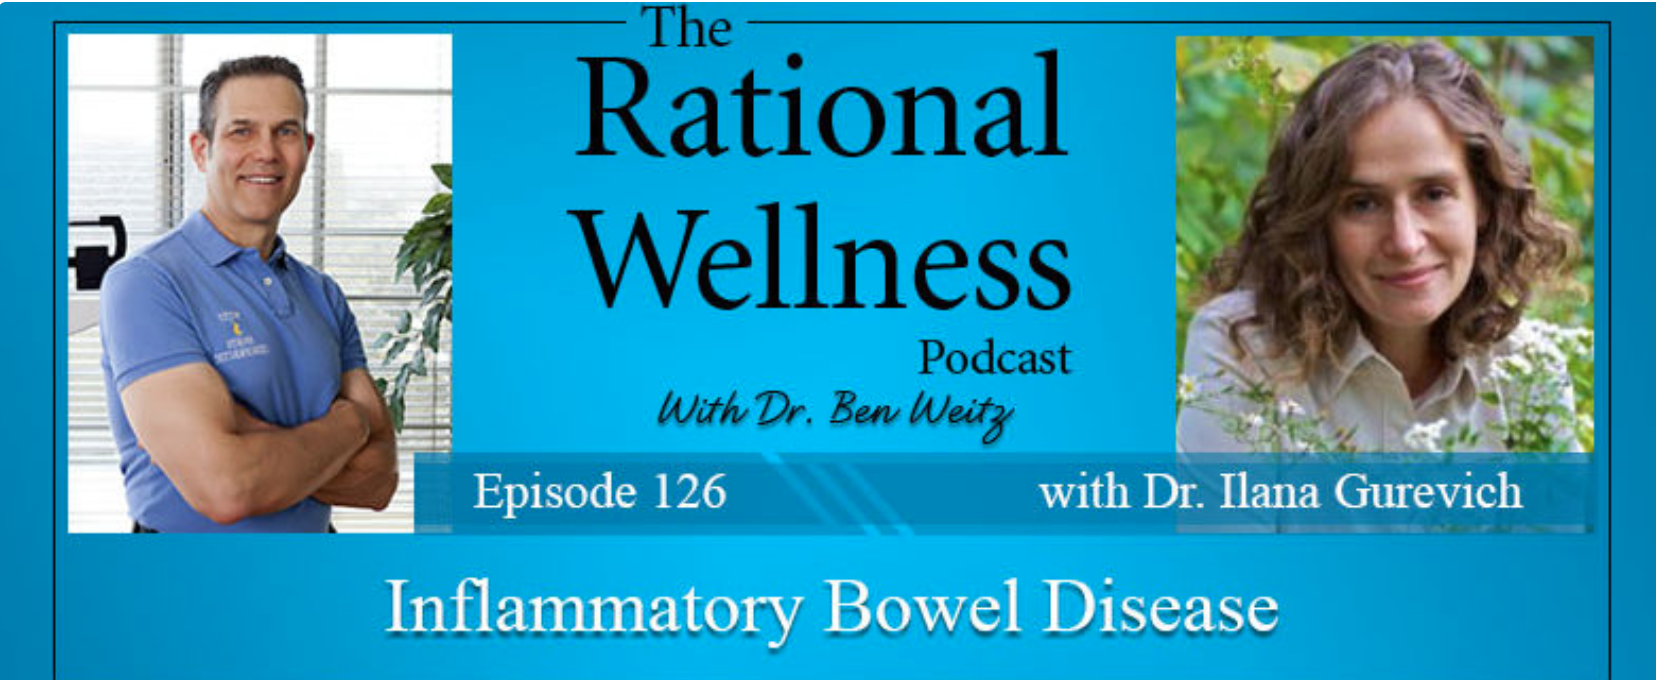 The Rational Wellness podcast